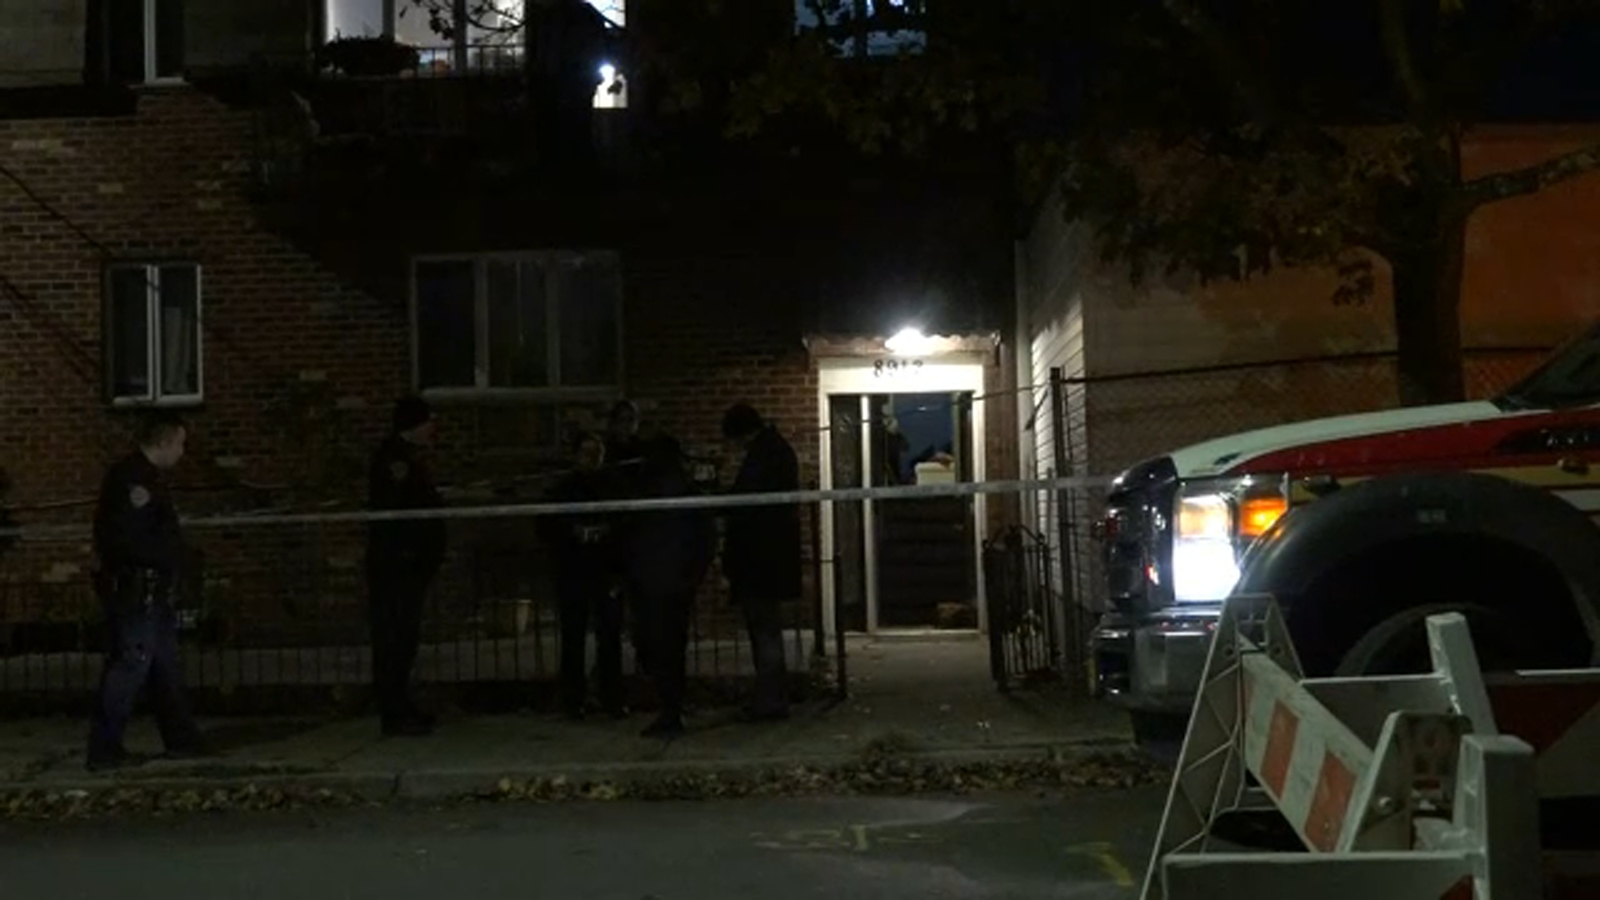 27-year-old woman stabbed to death inside Queens home, police say